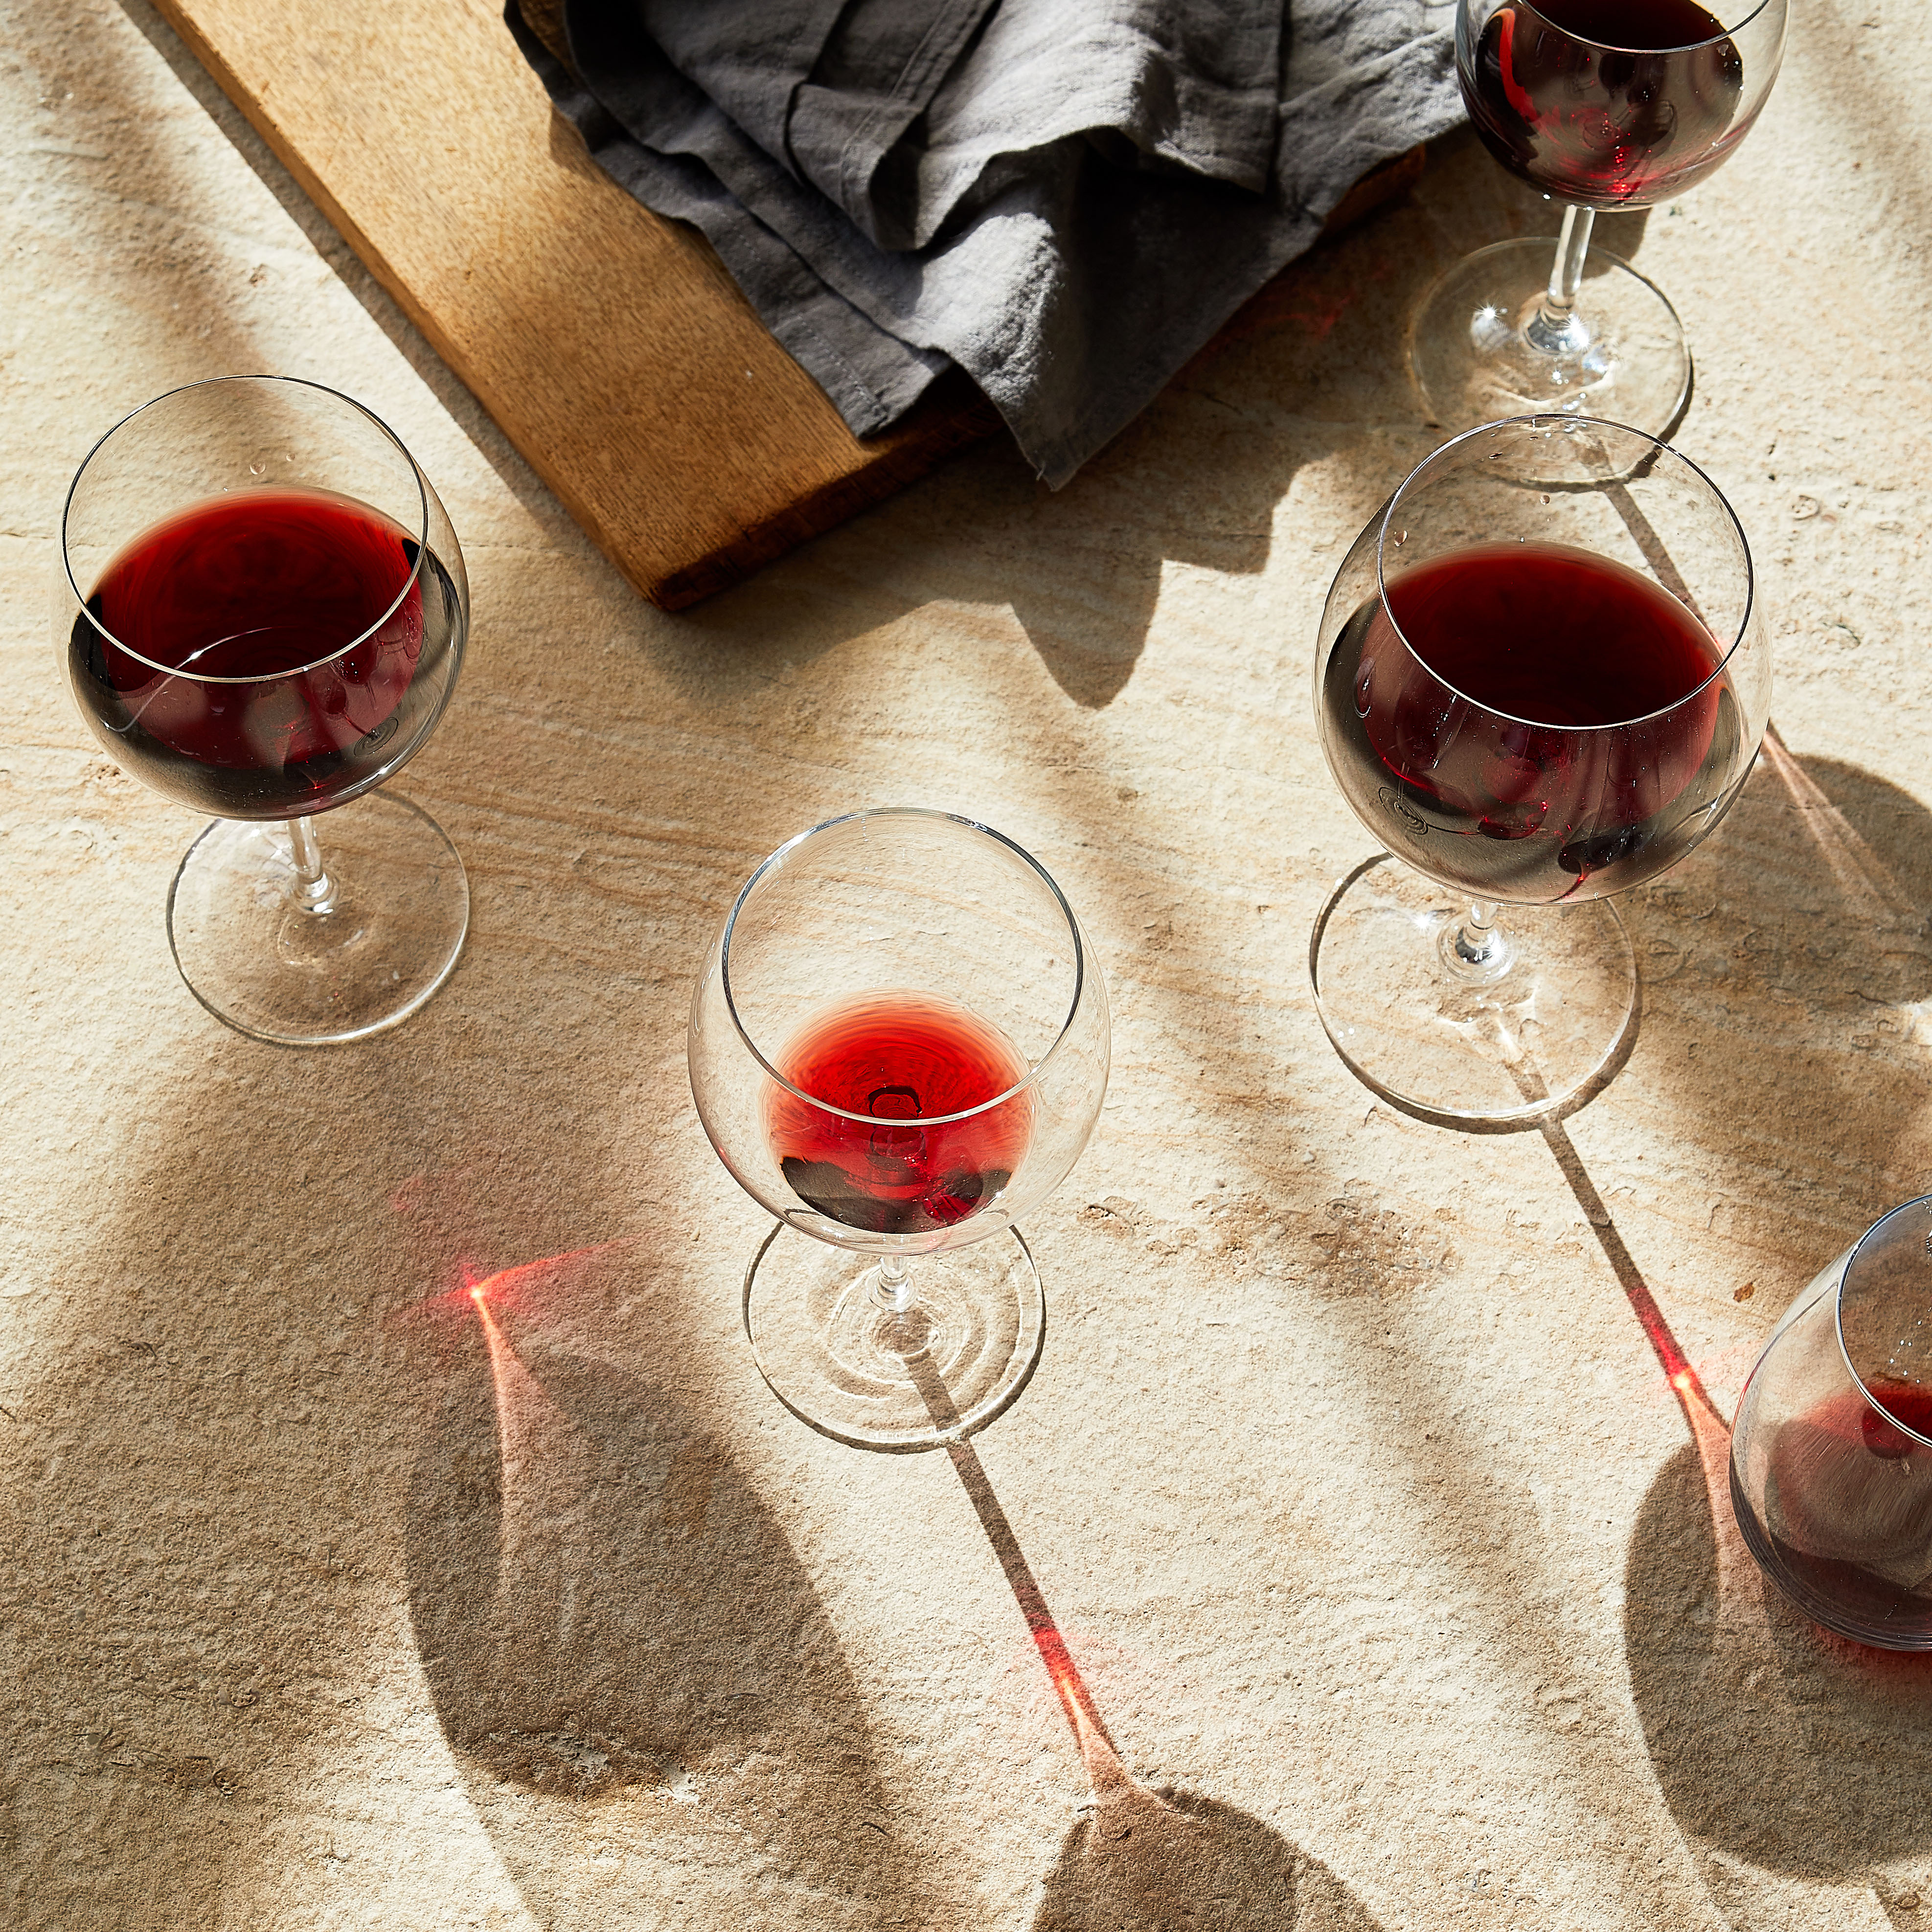 Understanding Red Wine: How to Decide If Cabernet Sauvignon, Pinot Noir, Malbec, or Syrah Is Your Preferred Style